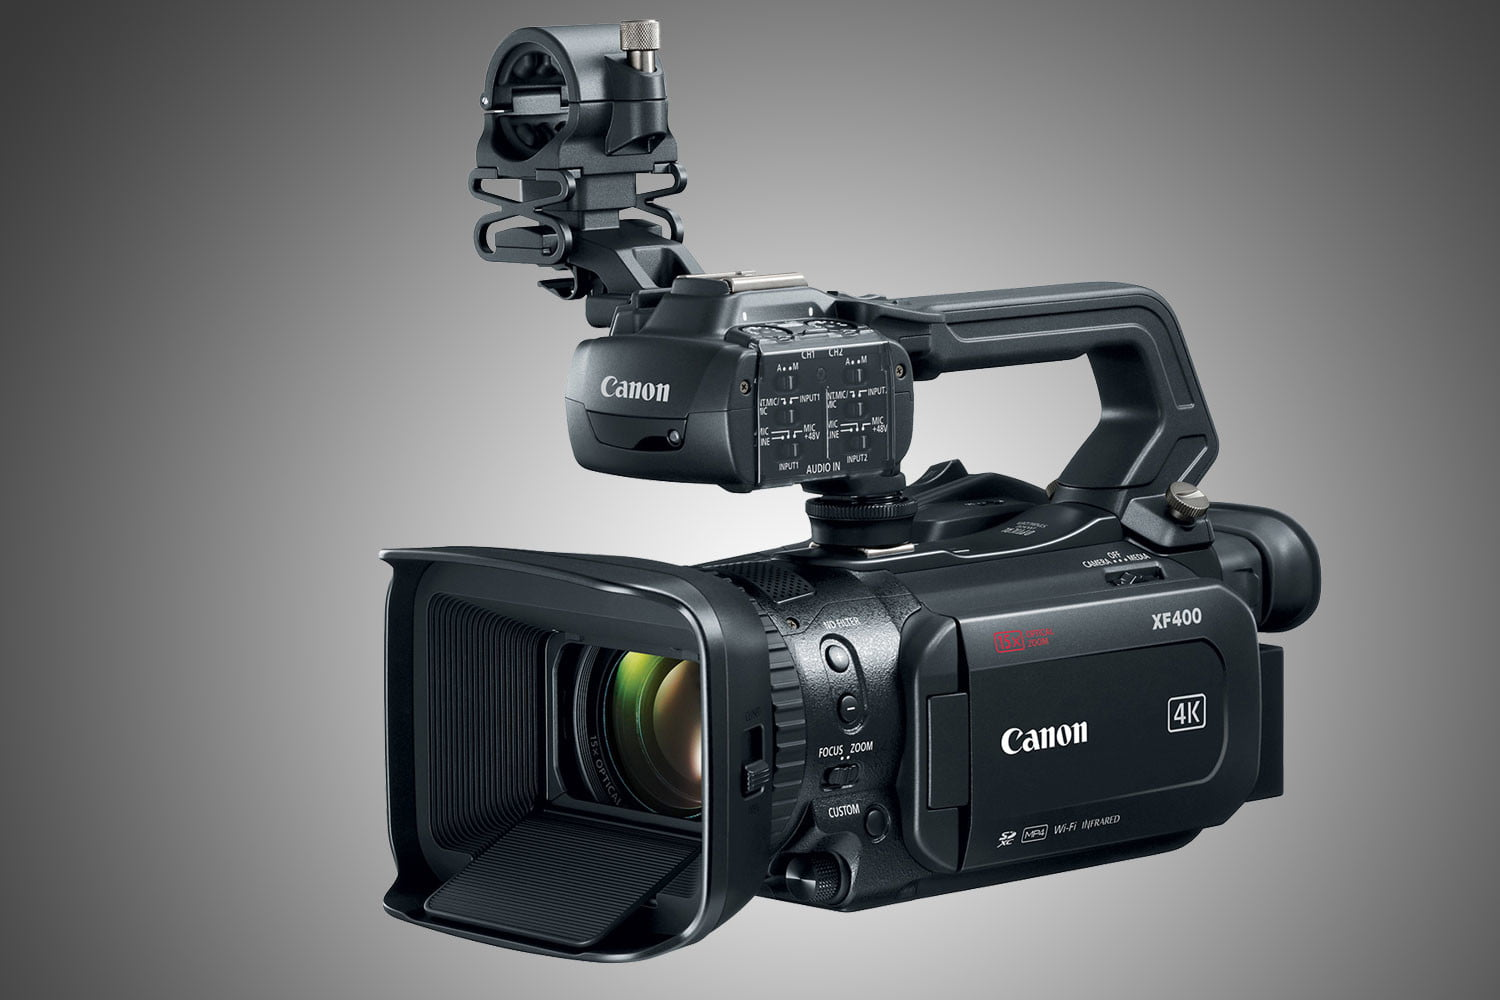 Do Camcorders Still Make Sense In 2018 Our Camcorder Buying Guide Digital Trends